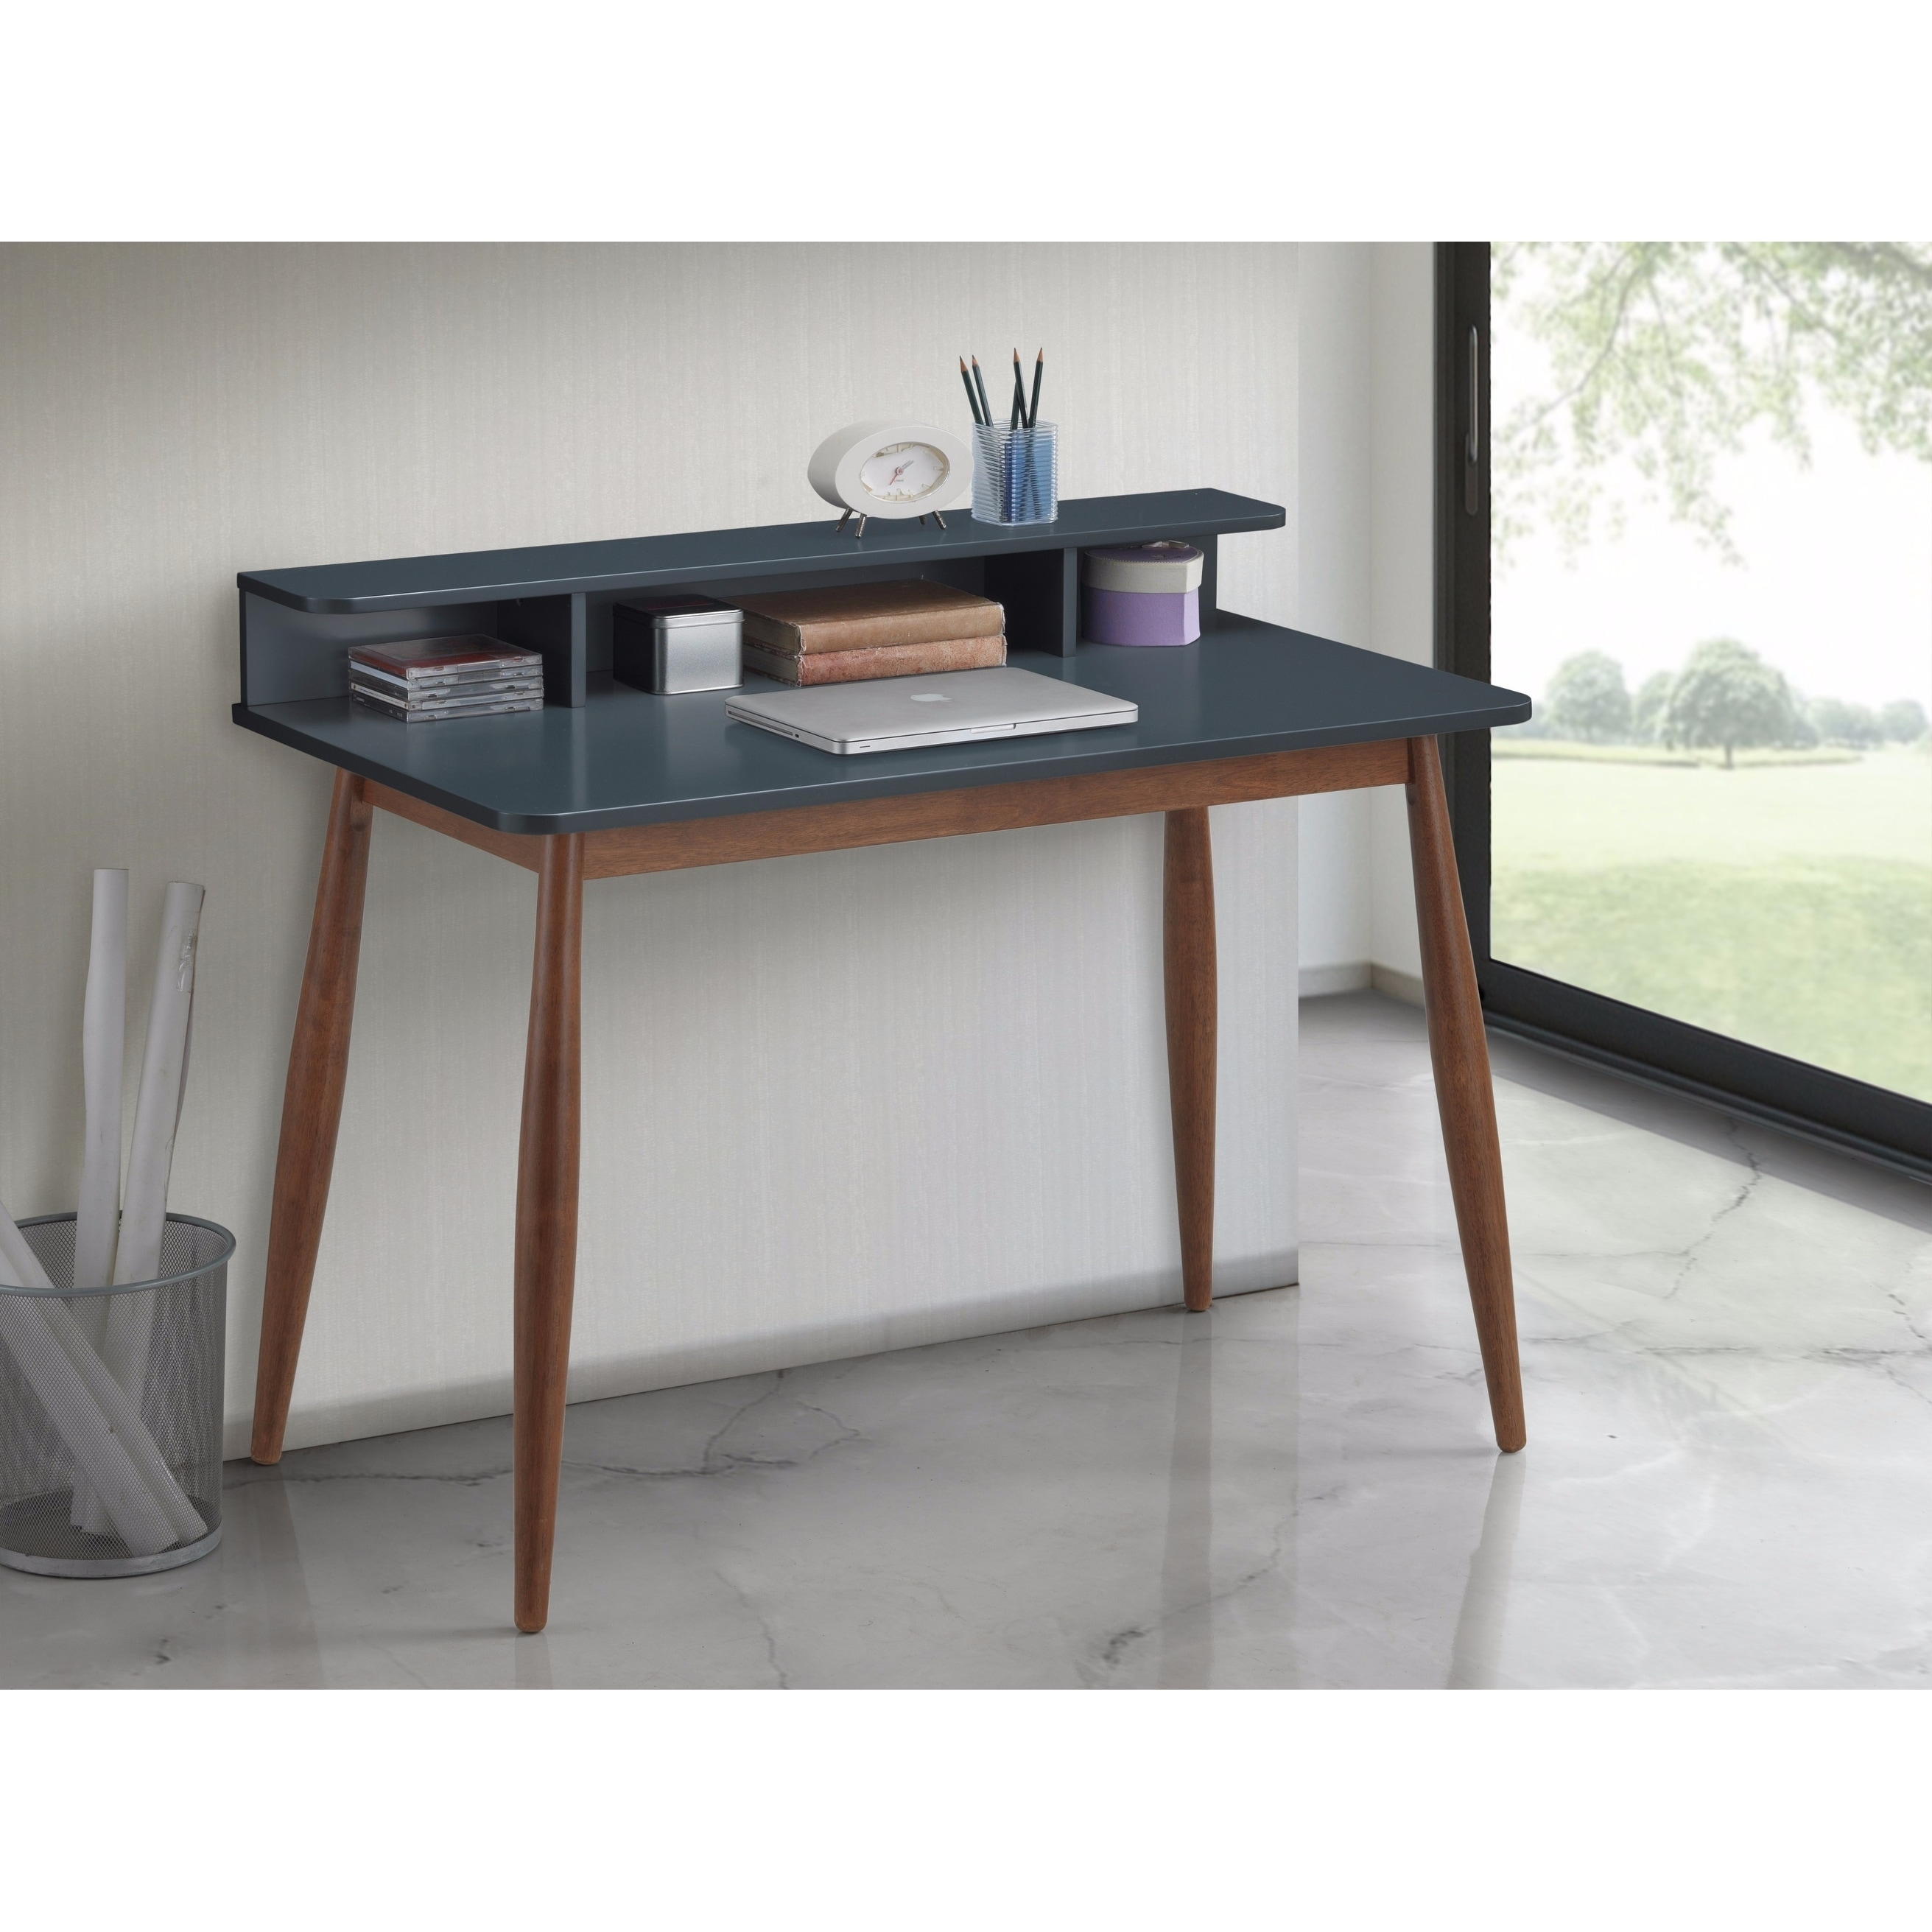 drawer home large modern wood storage metal gray writing gloss beautiful stain lamp led finish office white appealing nickel small top base material mesmerizing desks desk